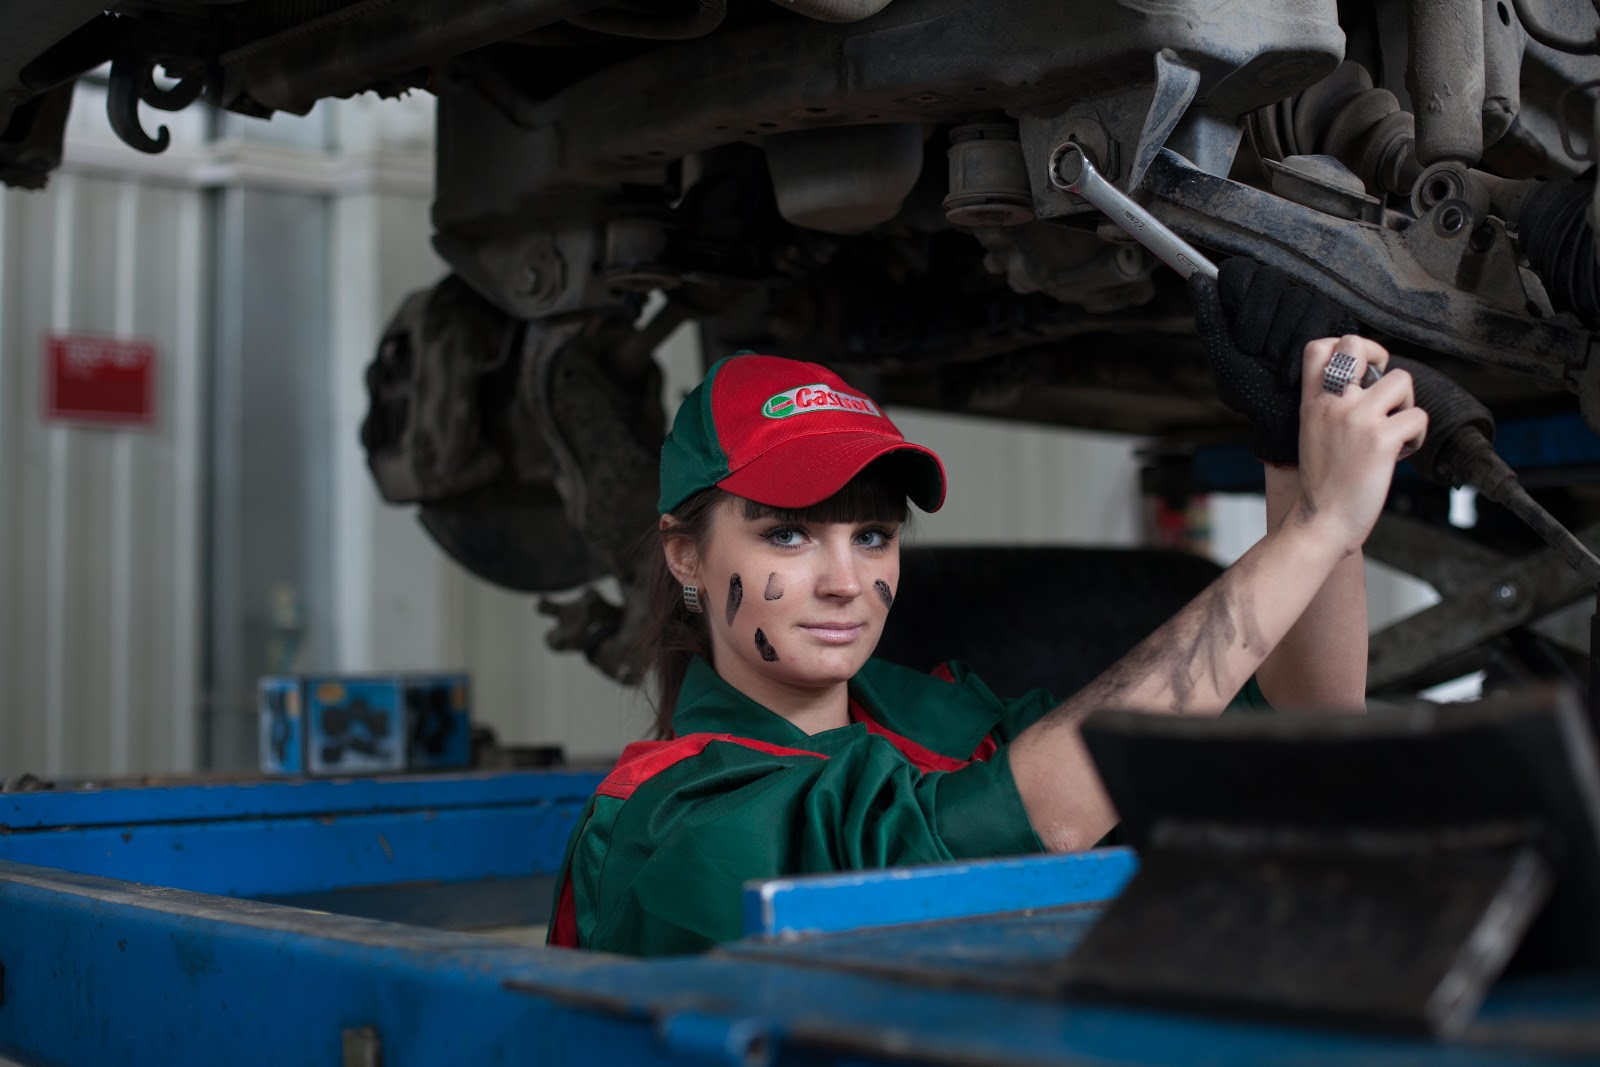 A woman works on a chassis